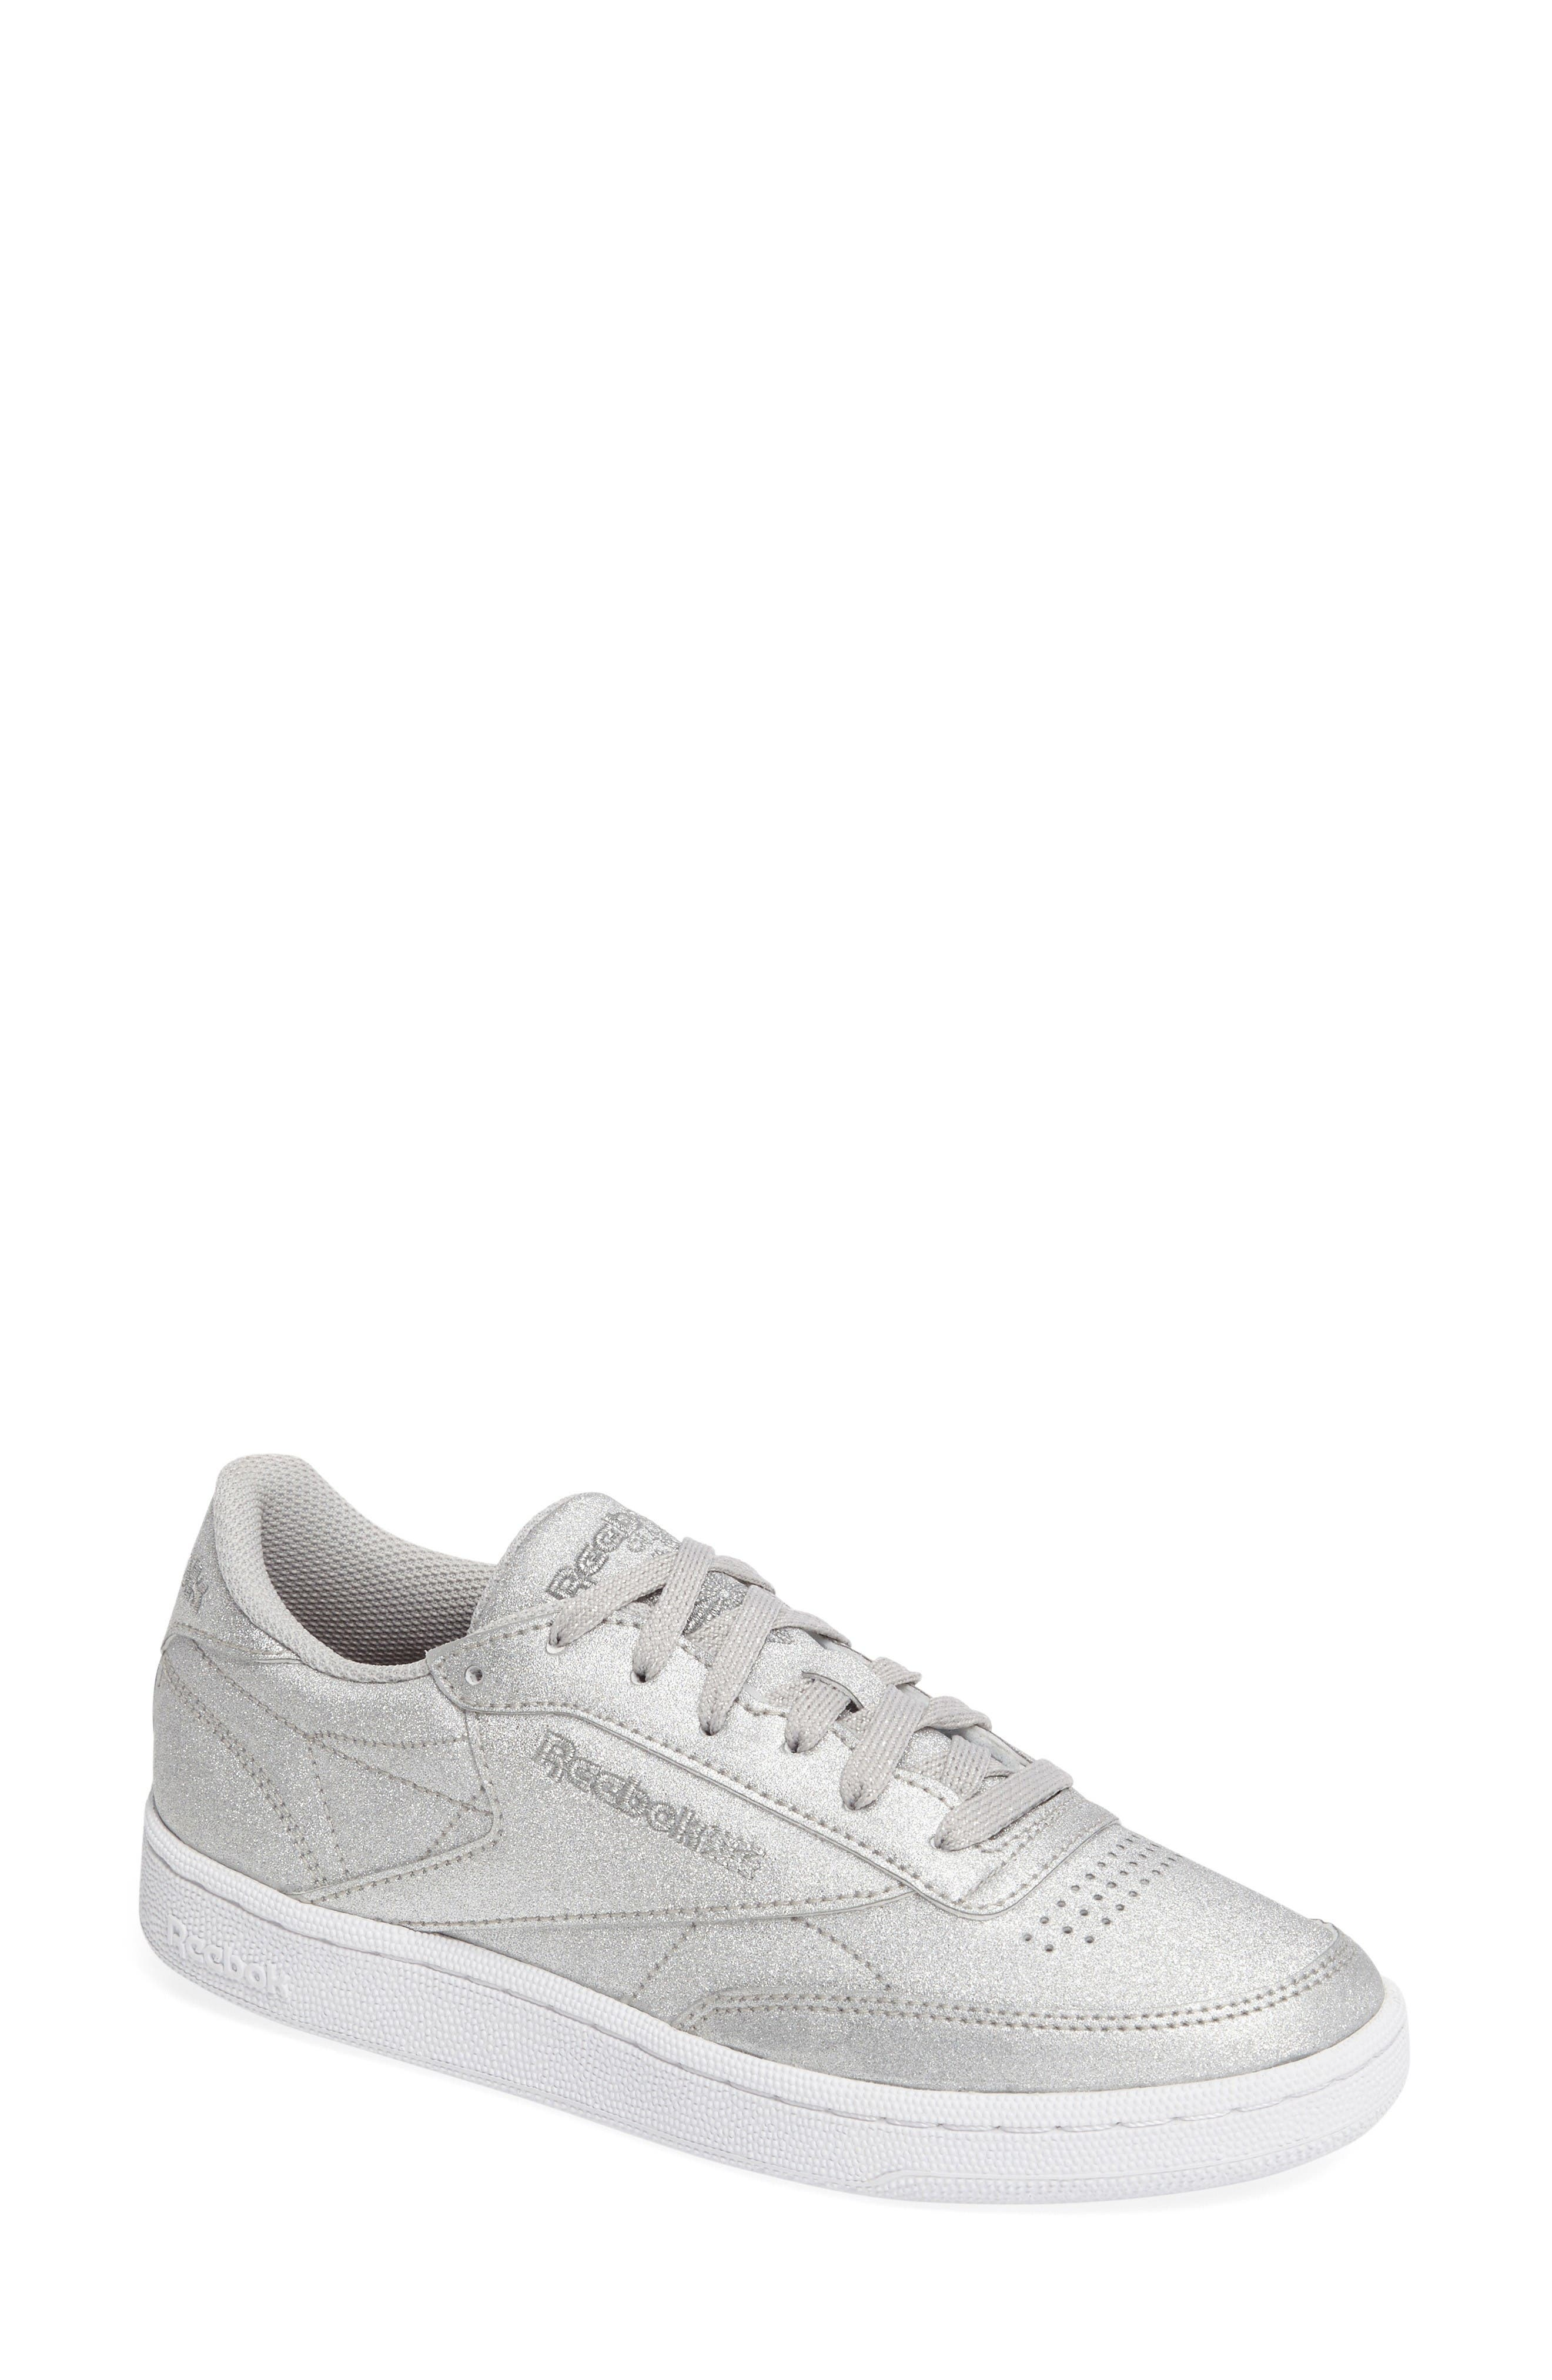 reebok club c 85 or pas cher > OFF57% R ductions